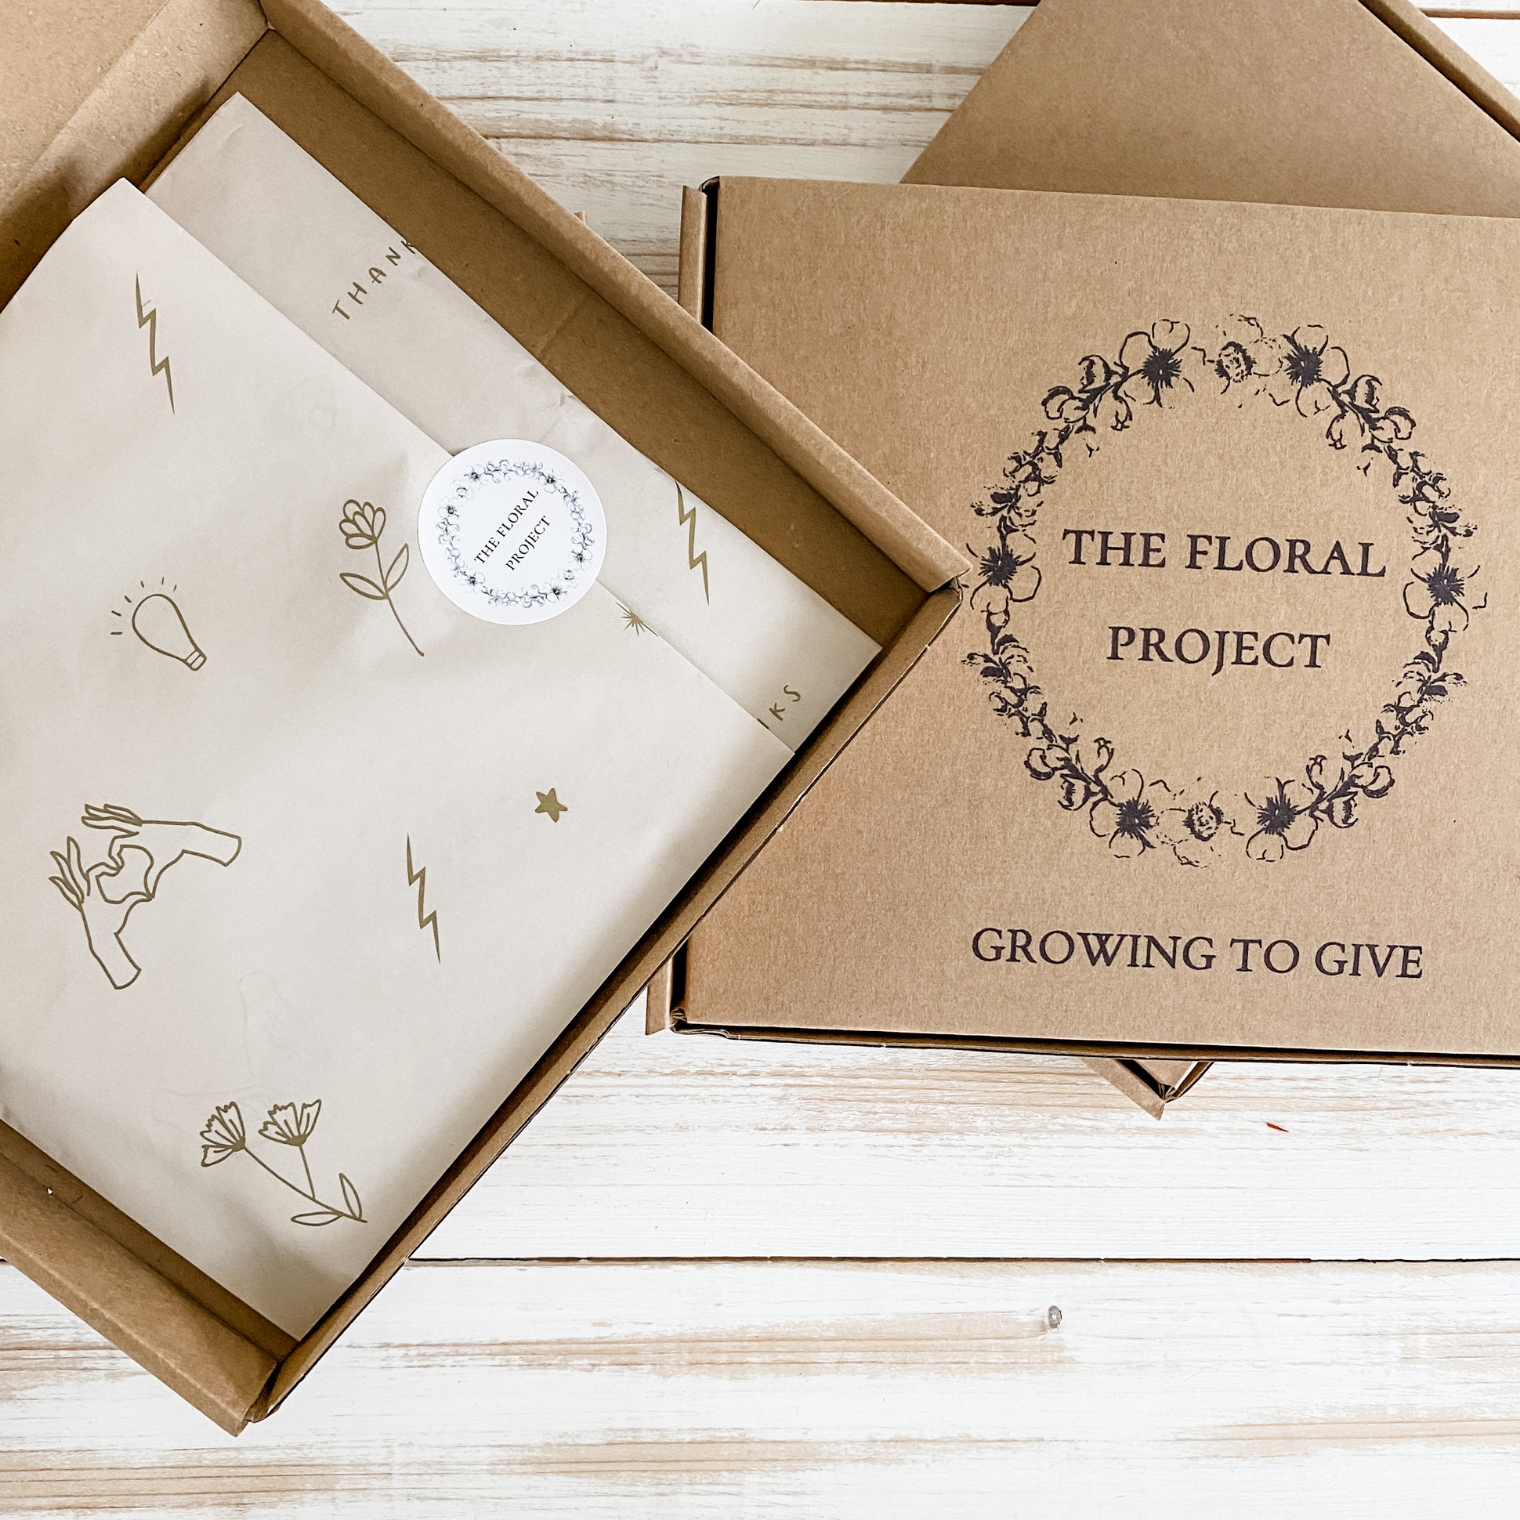 The Floral Project